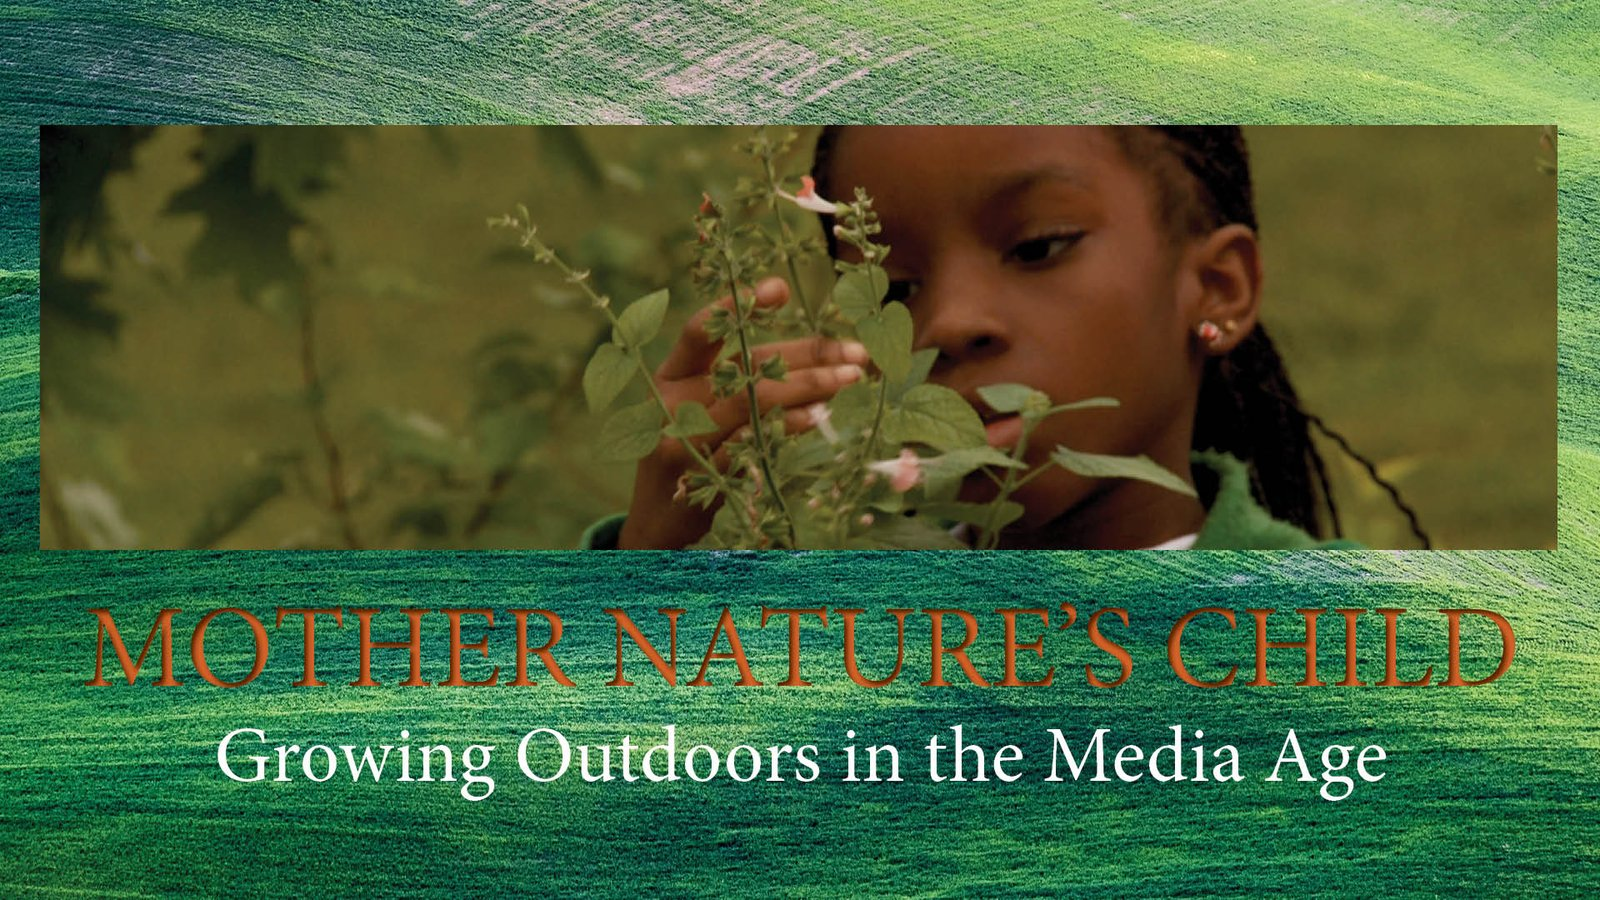 Mother Nature's Child - Growing Outdoors in the Media Age